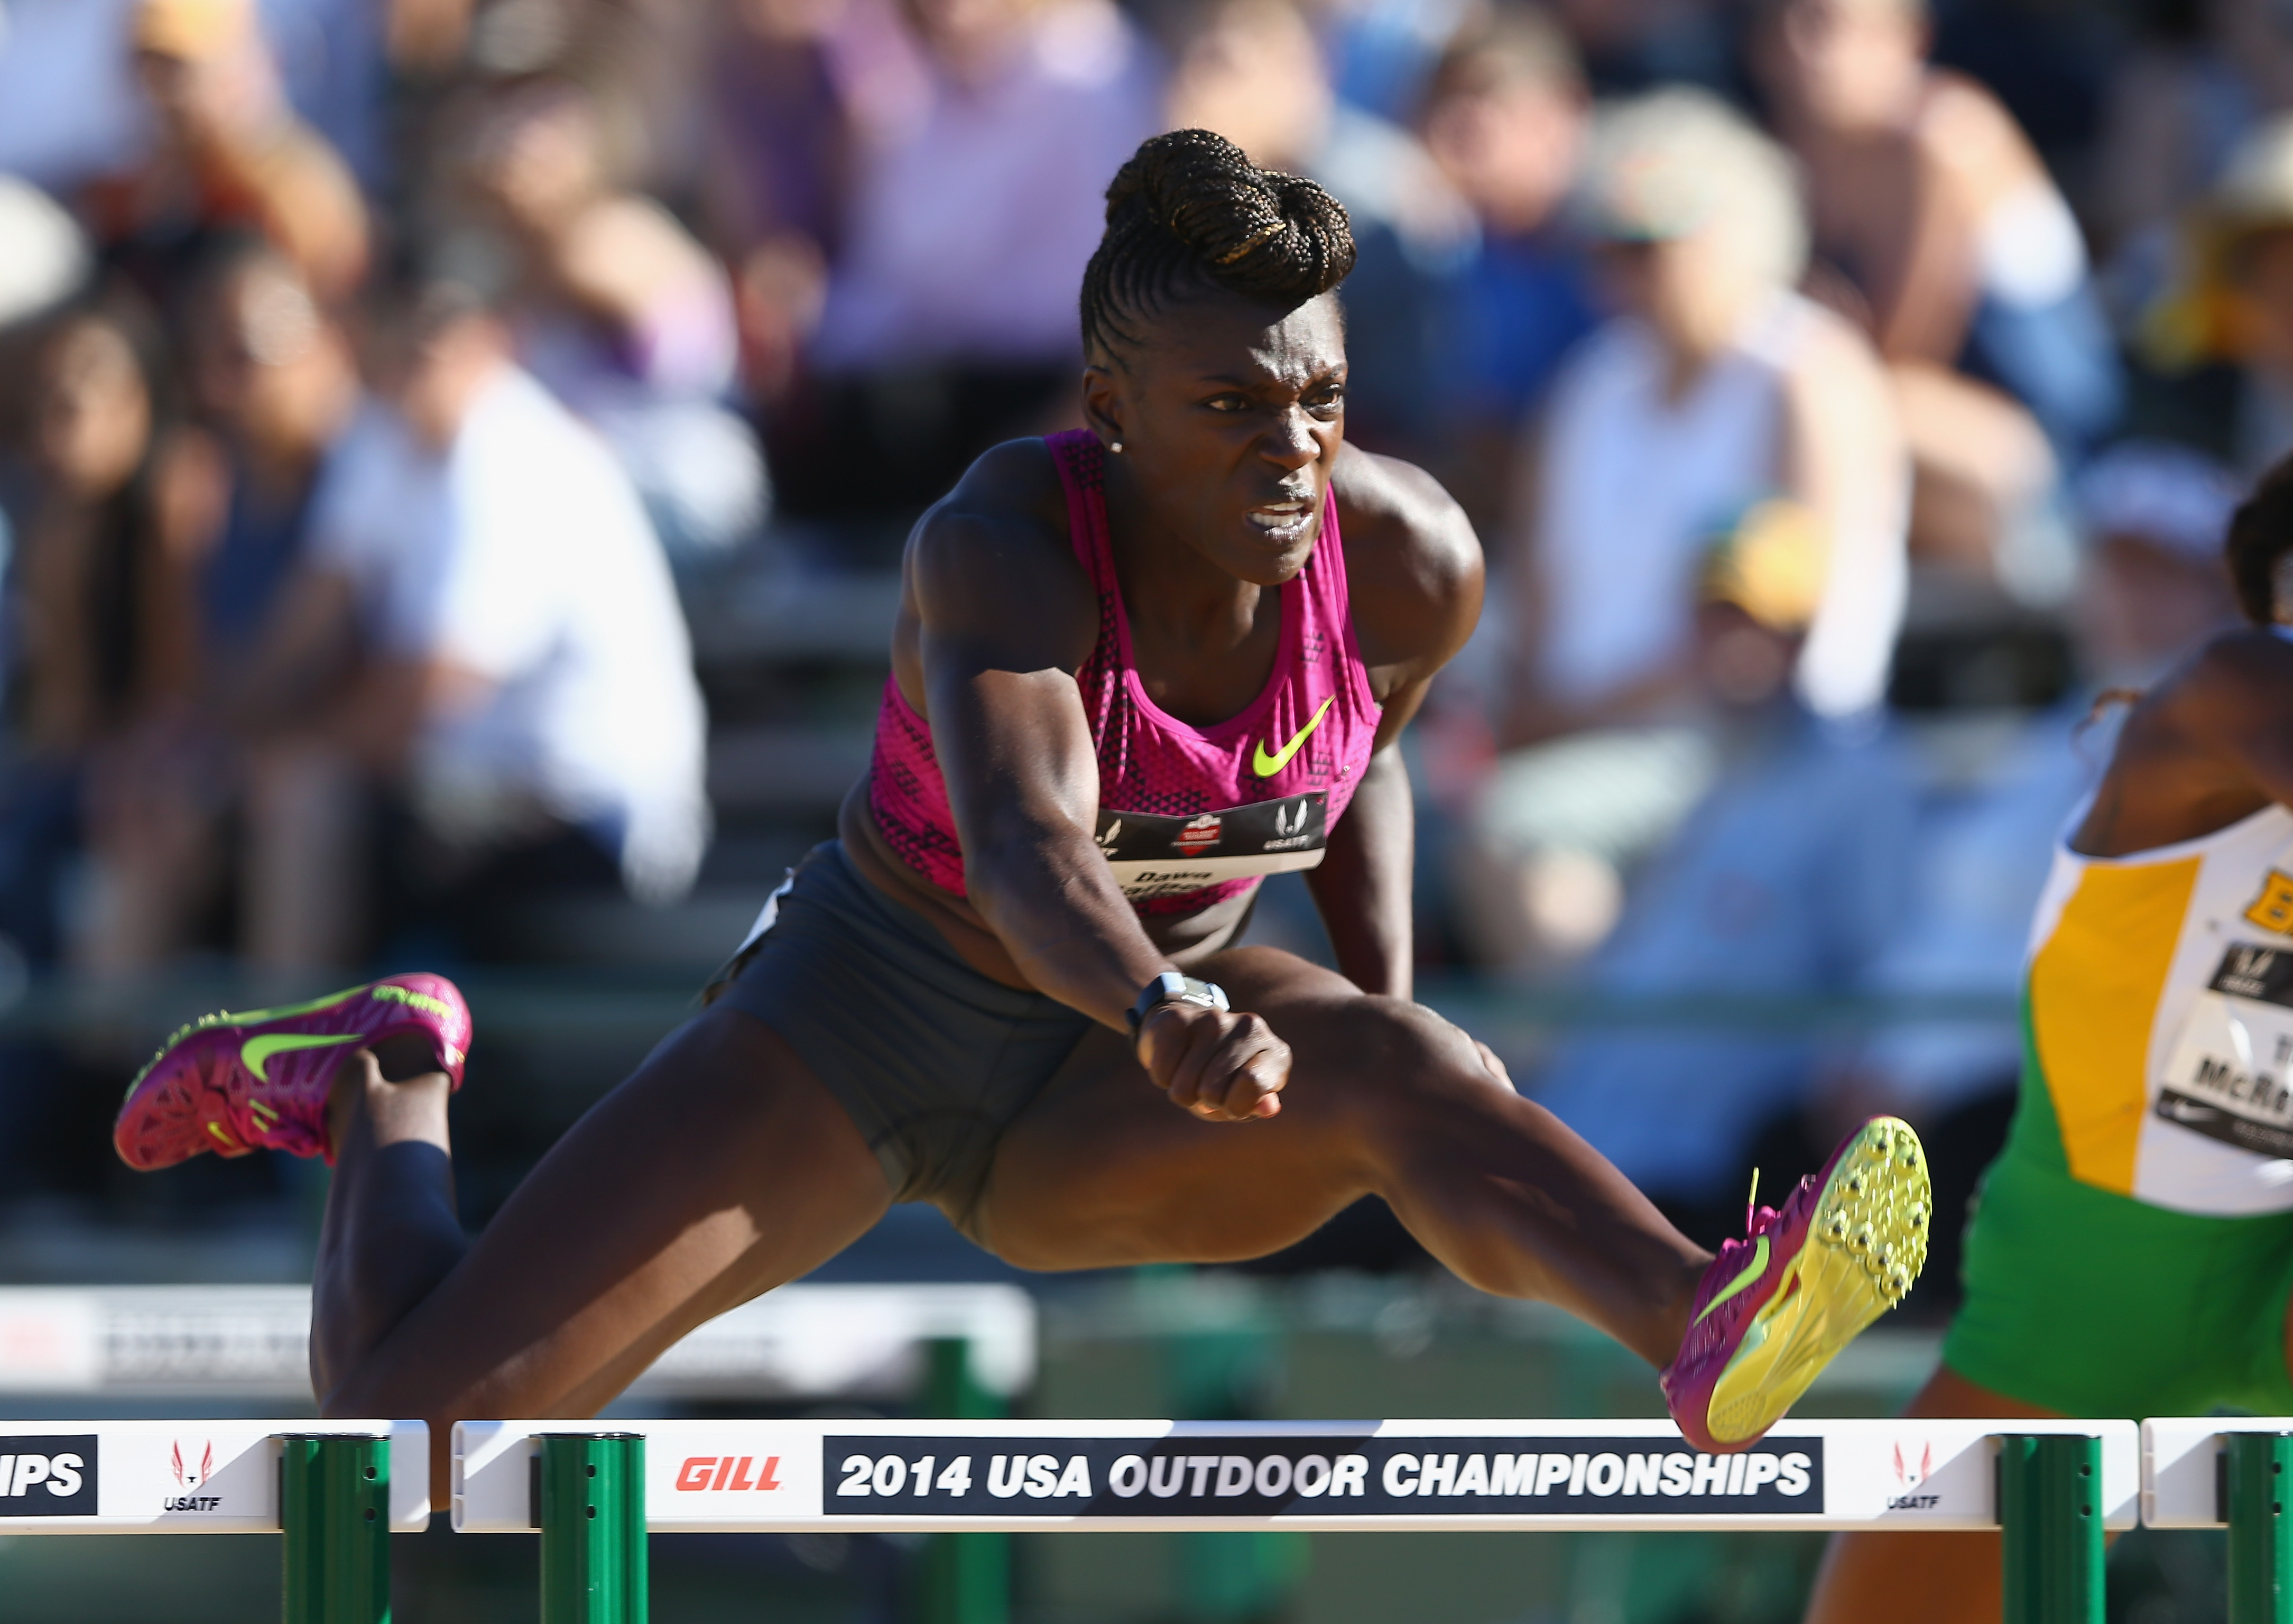 Dawn Harper Nelson wins 100m hurdles at US Championships 4338x3072